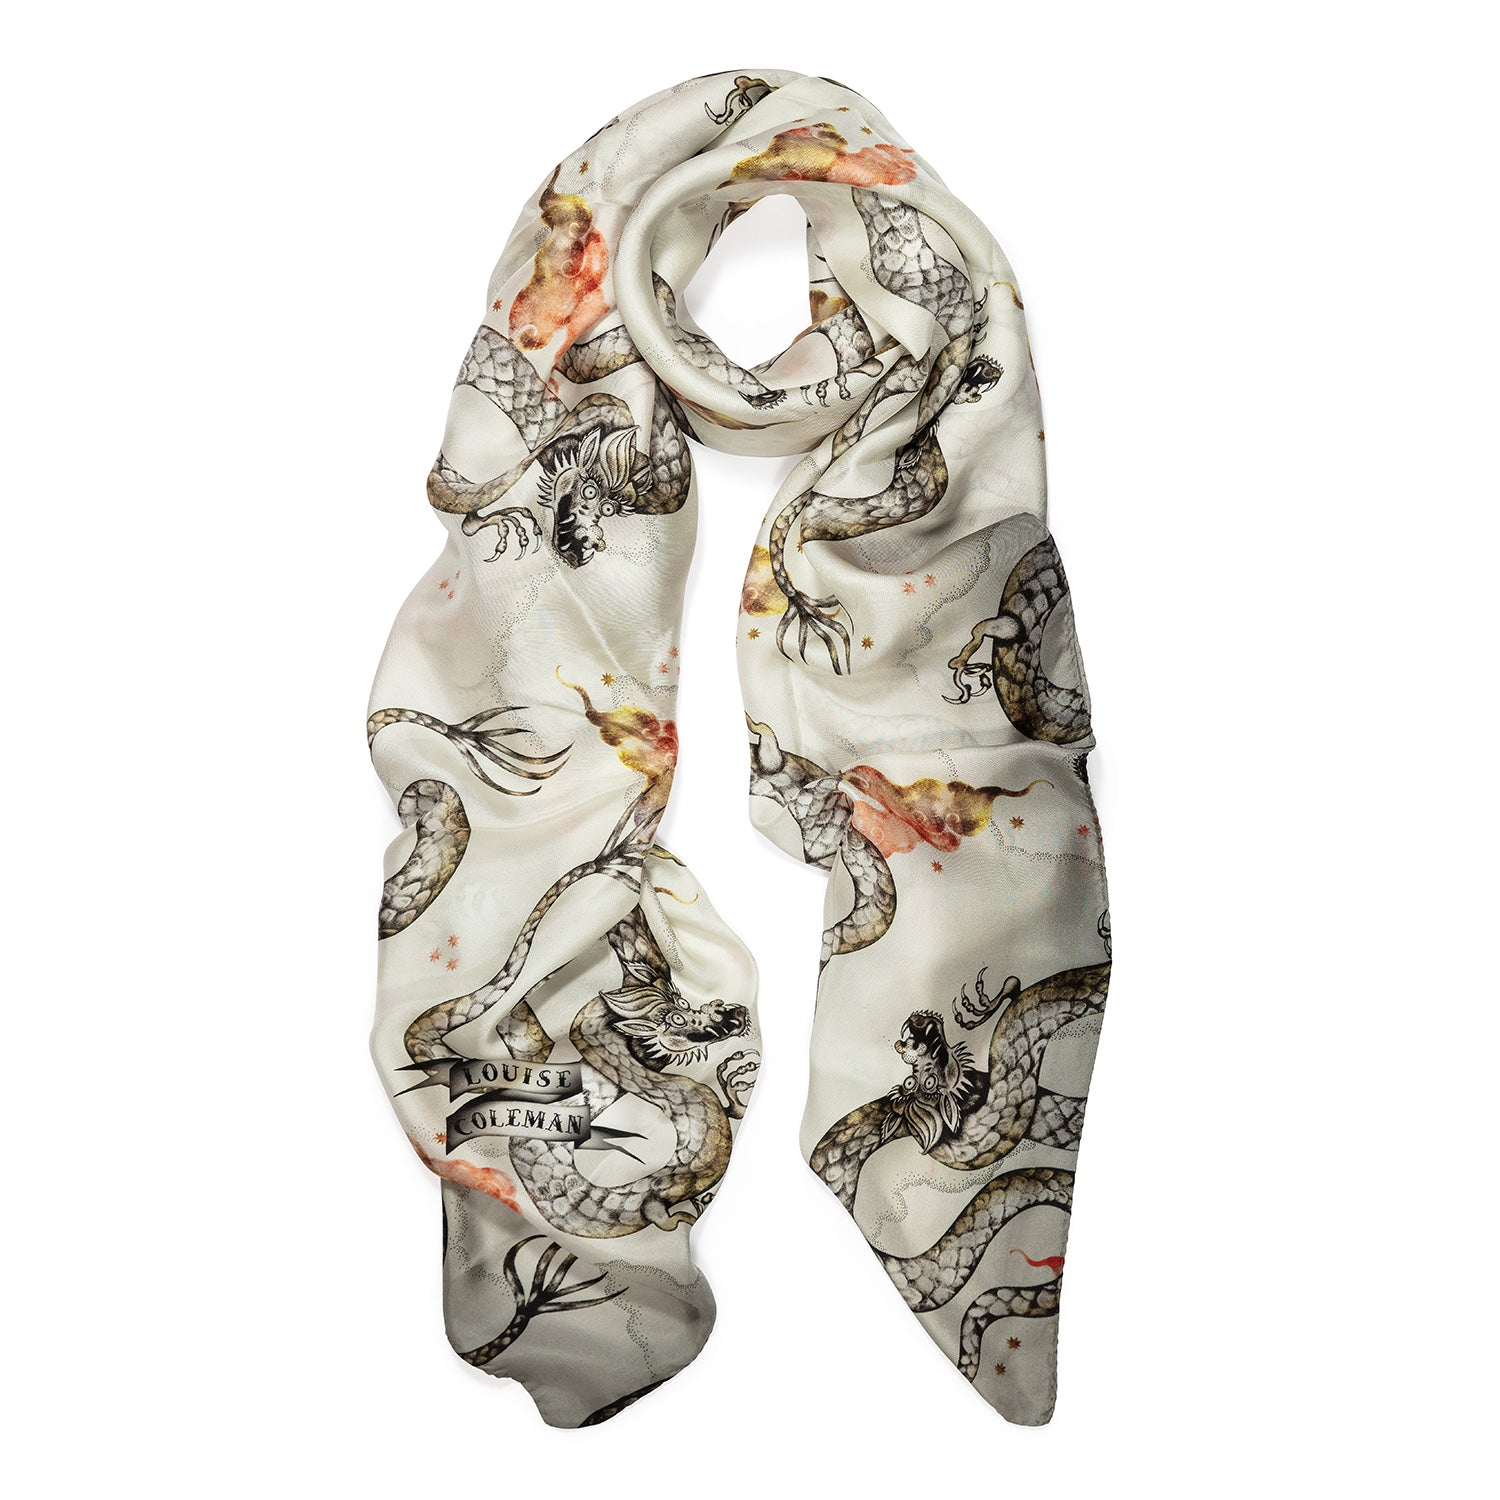 Magic Dragon silk square scarf featuring an intricate hand illustrated dragon print in ivory colourway by Louise Coleman